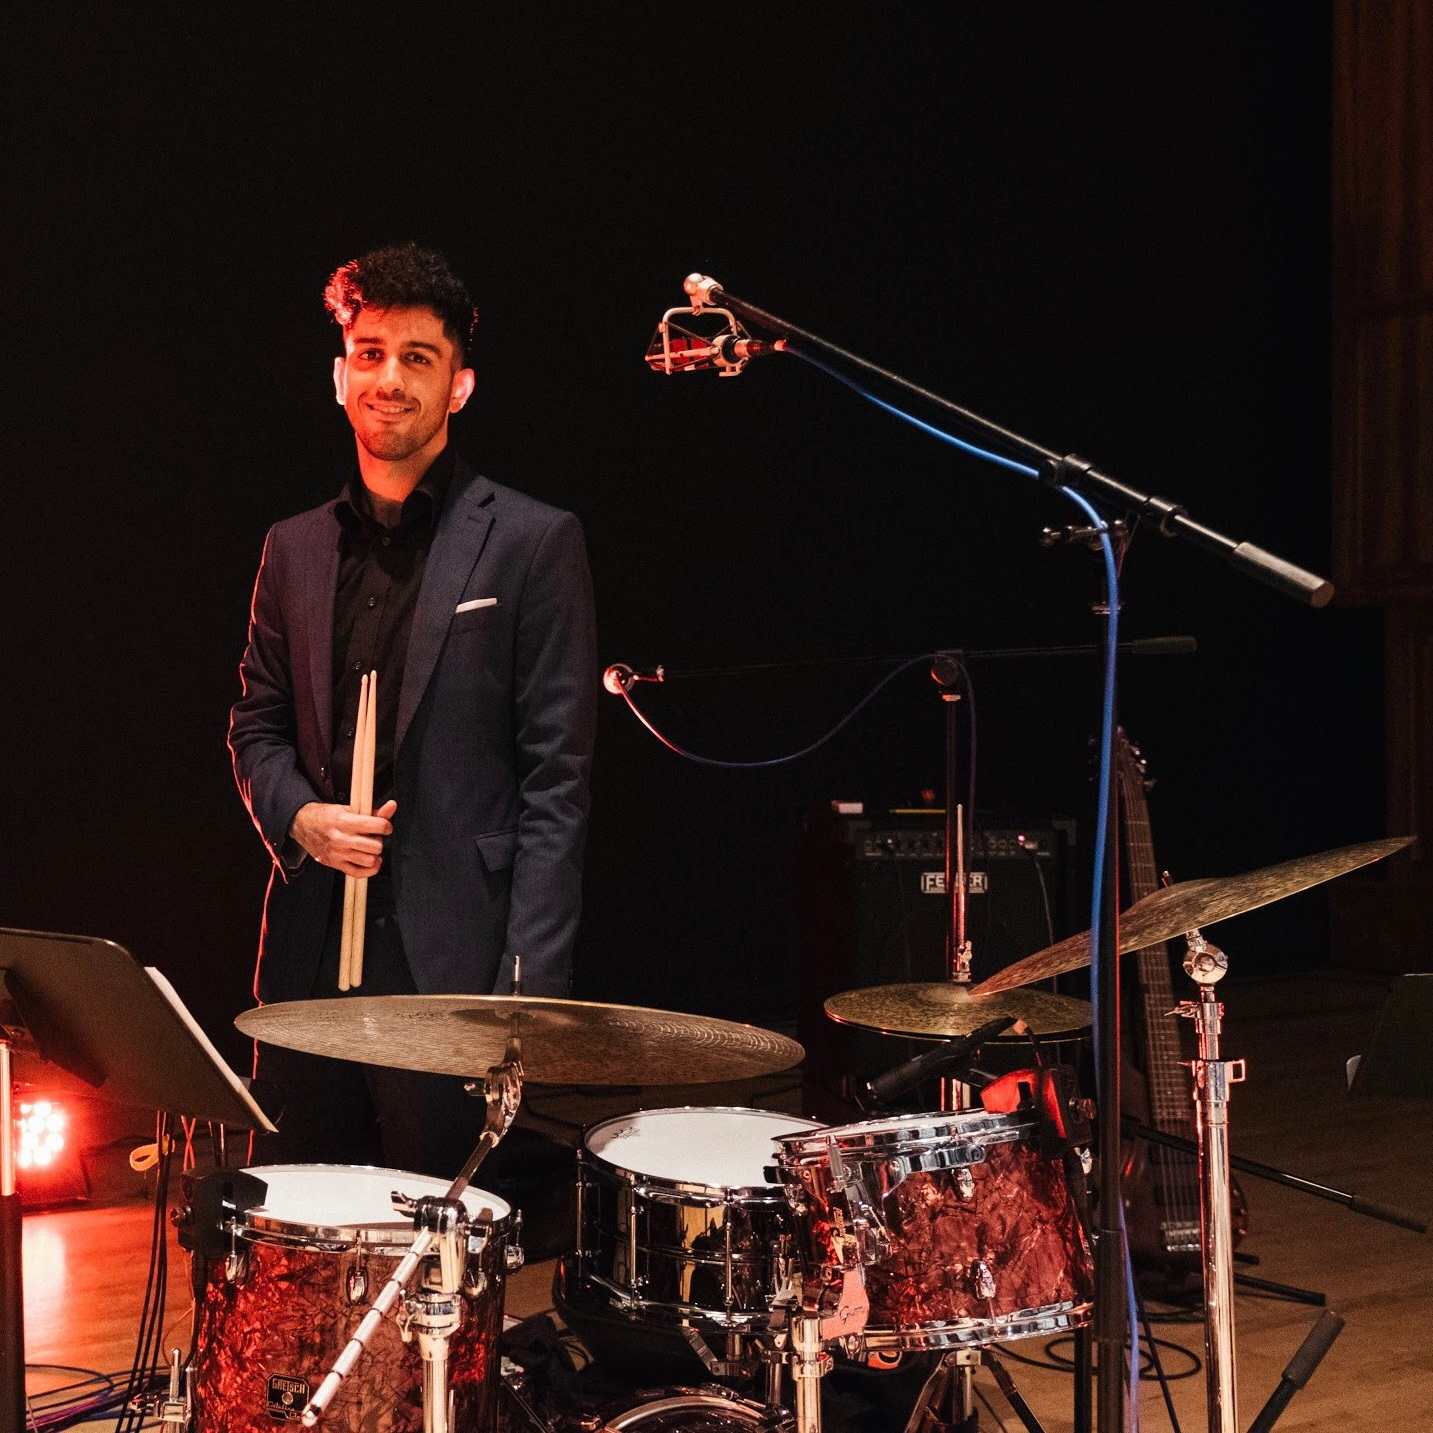 Koosha - Koosha received his B.A. in Jazz Drumming from UC Irvine, where he studied with professors who worked with prestigious musicians Ravi Coltrane, Maynard Ferguson, and Miles Davis. Koosha has taught with several msuical theater companies and currently performs throughout San Diego with his band, The Dapper Bandits.